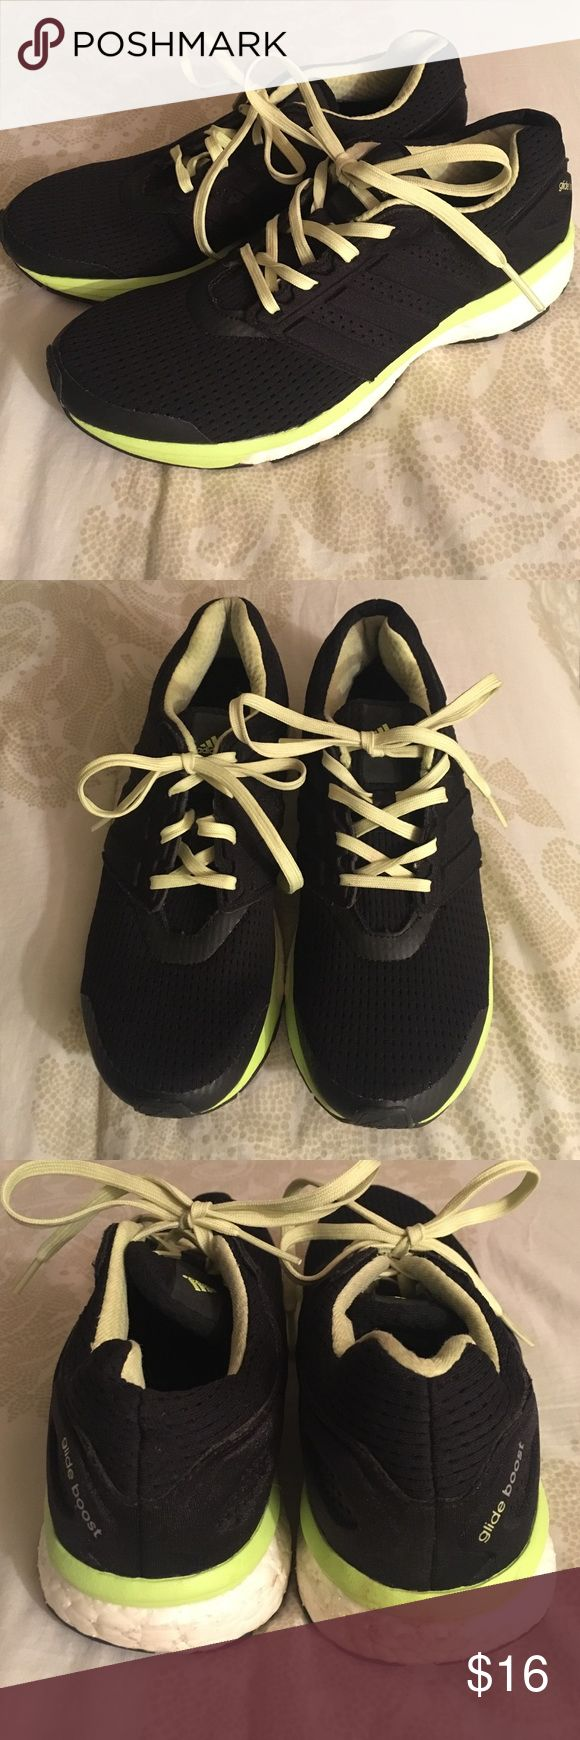 adidas glide boost sneakers size 7 Black, lime and light yellow glide boost sneakers. Previously worn, but in great condition. Adidas Shoes Sneakers